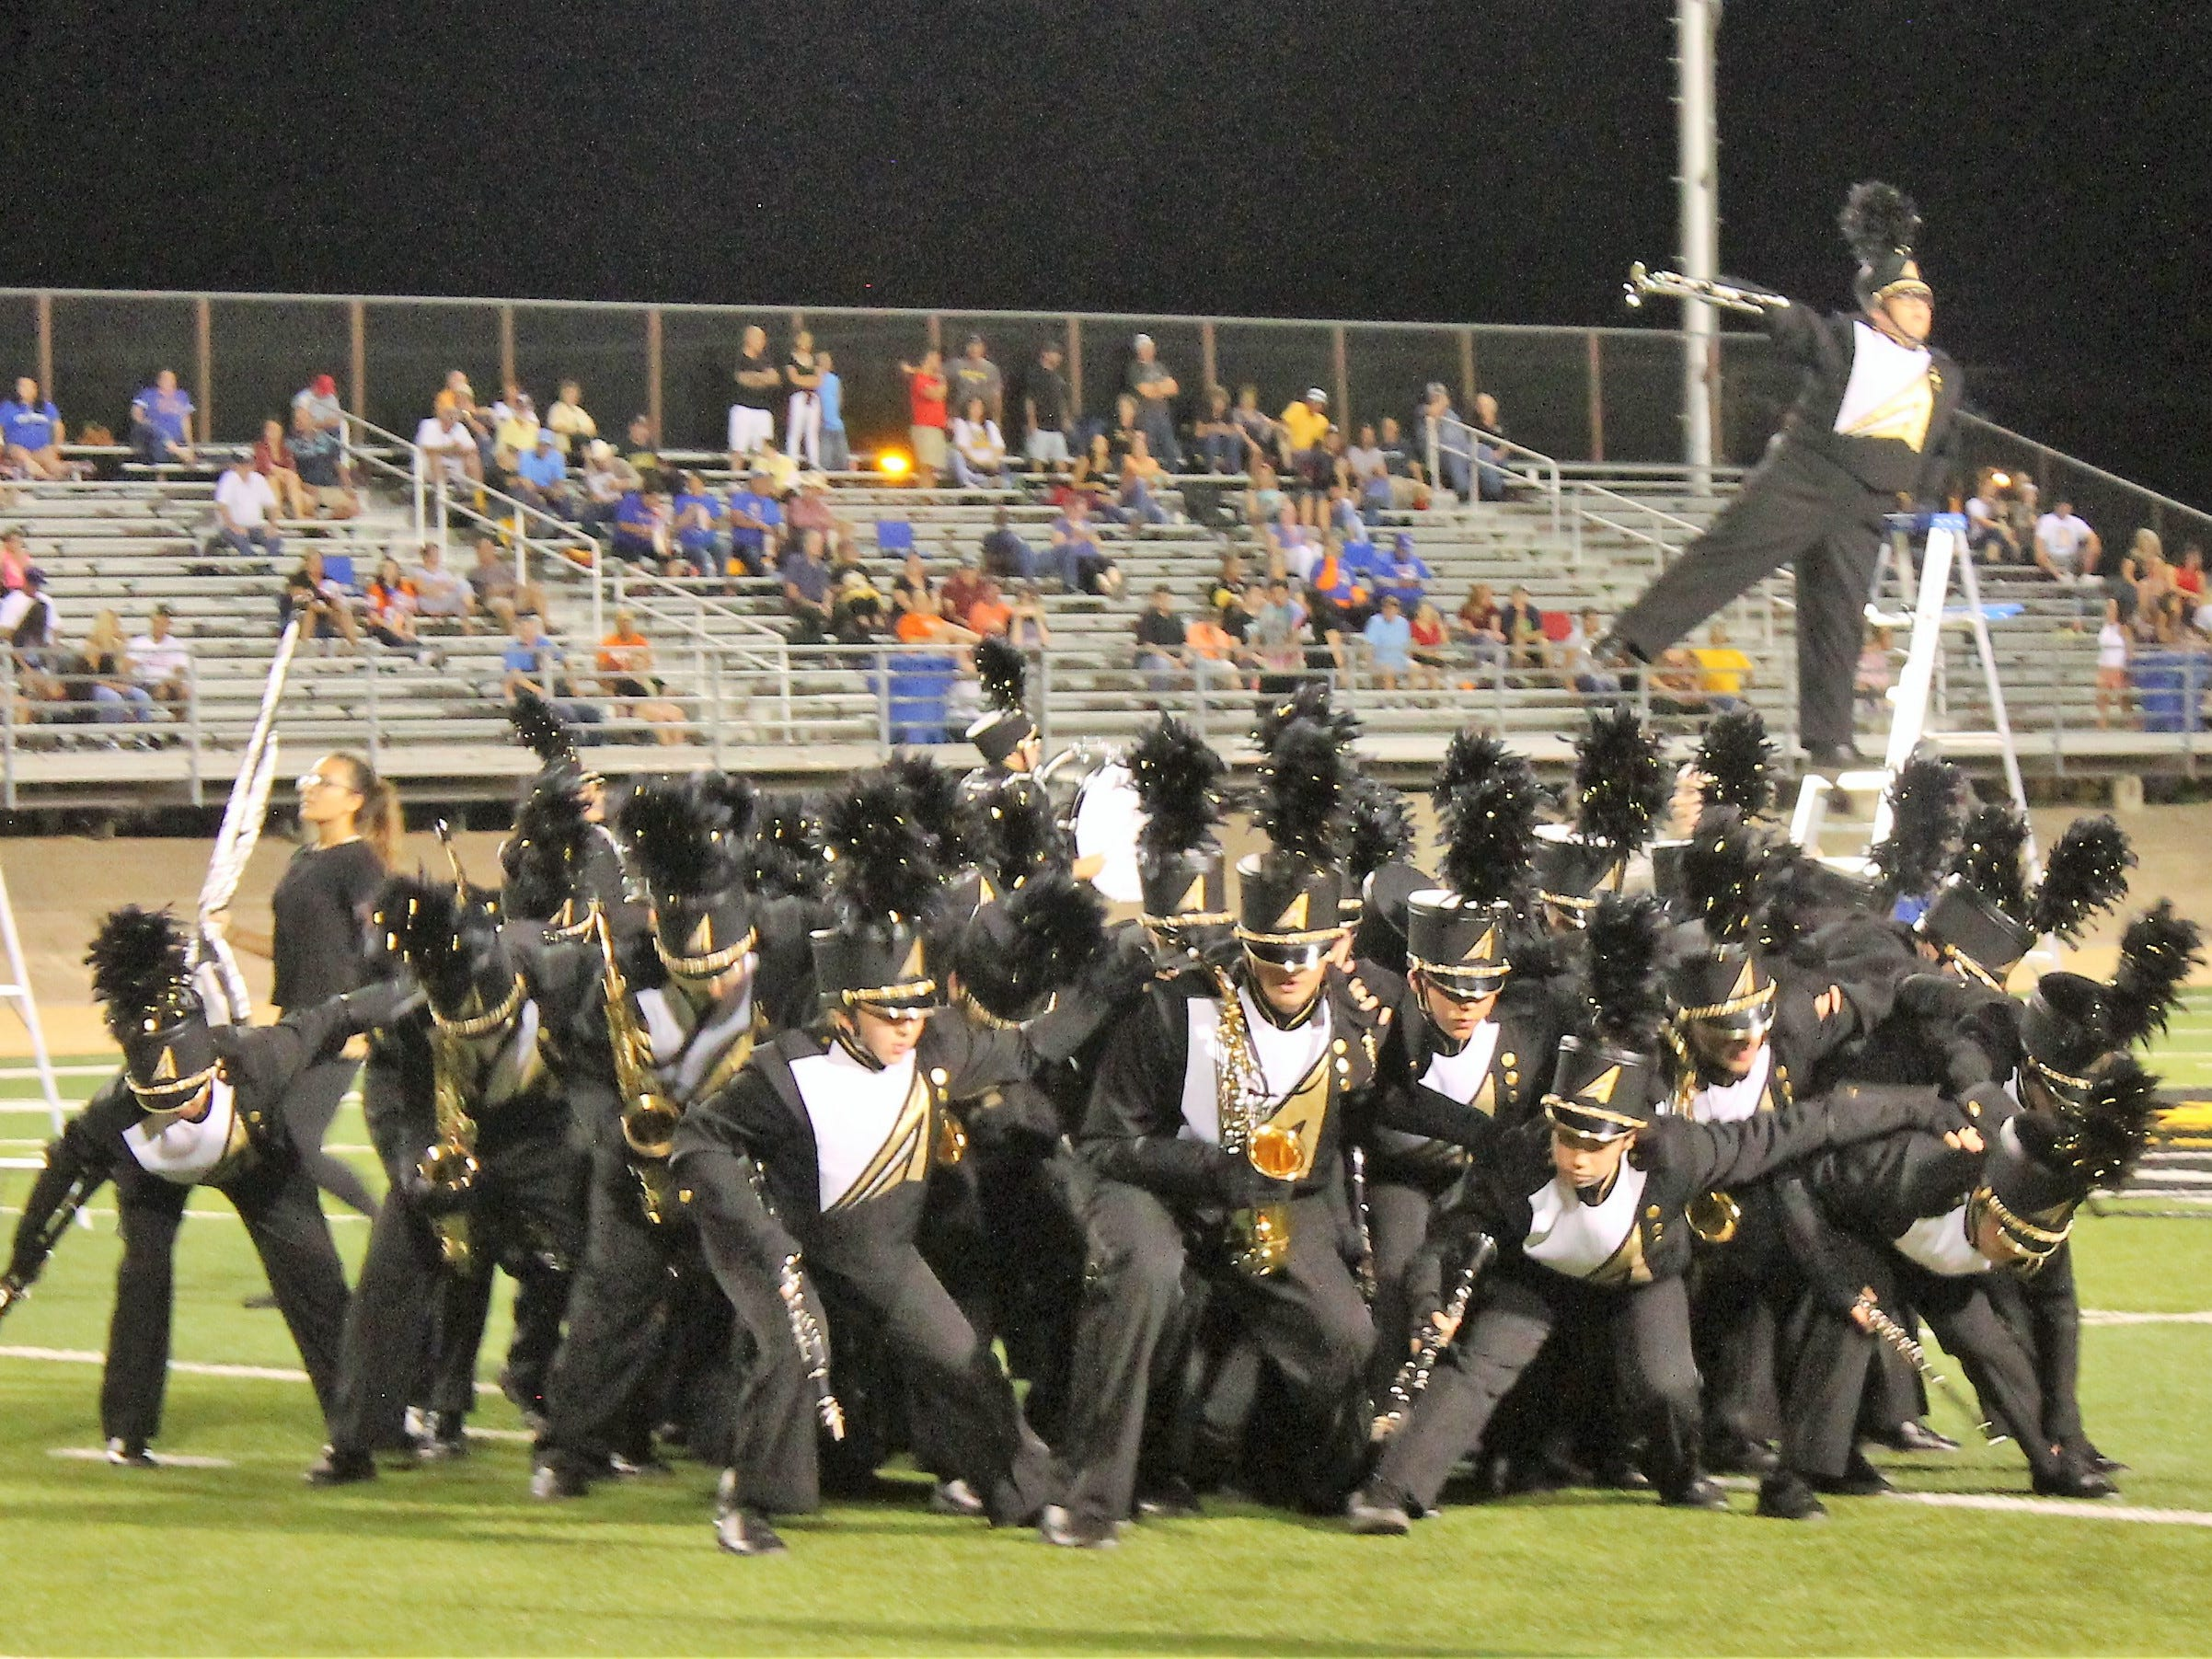 The Alamogordo Tiger Marching Band performs their marching show War Dance during halftime at Friday night's game against Los Lunas.